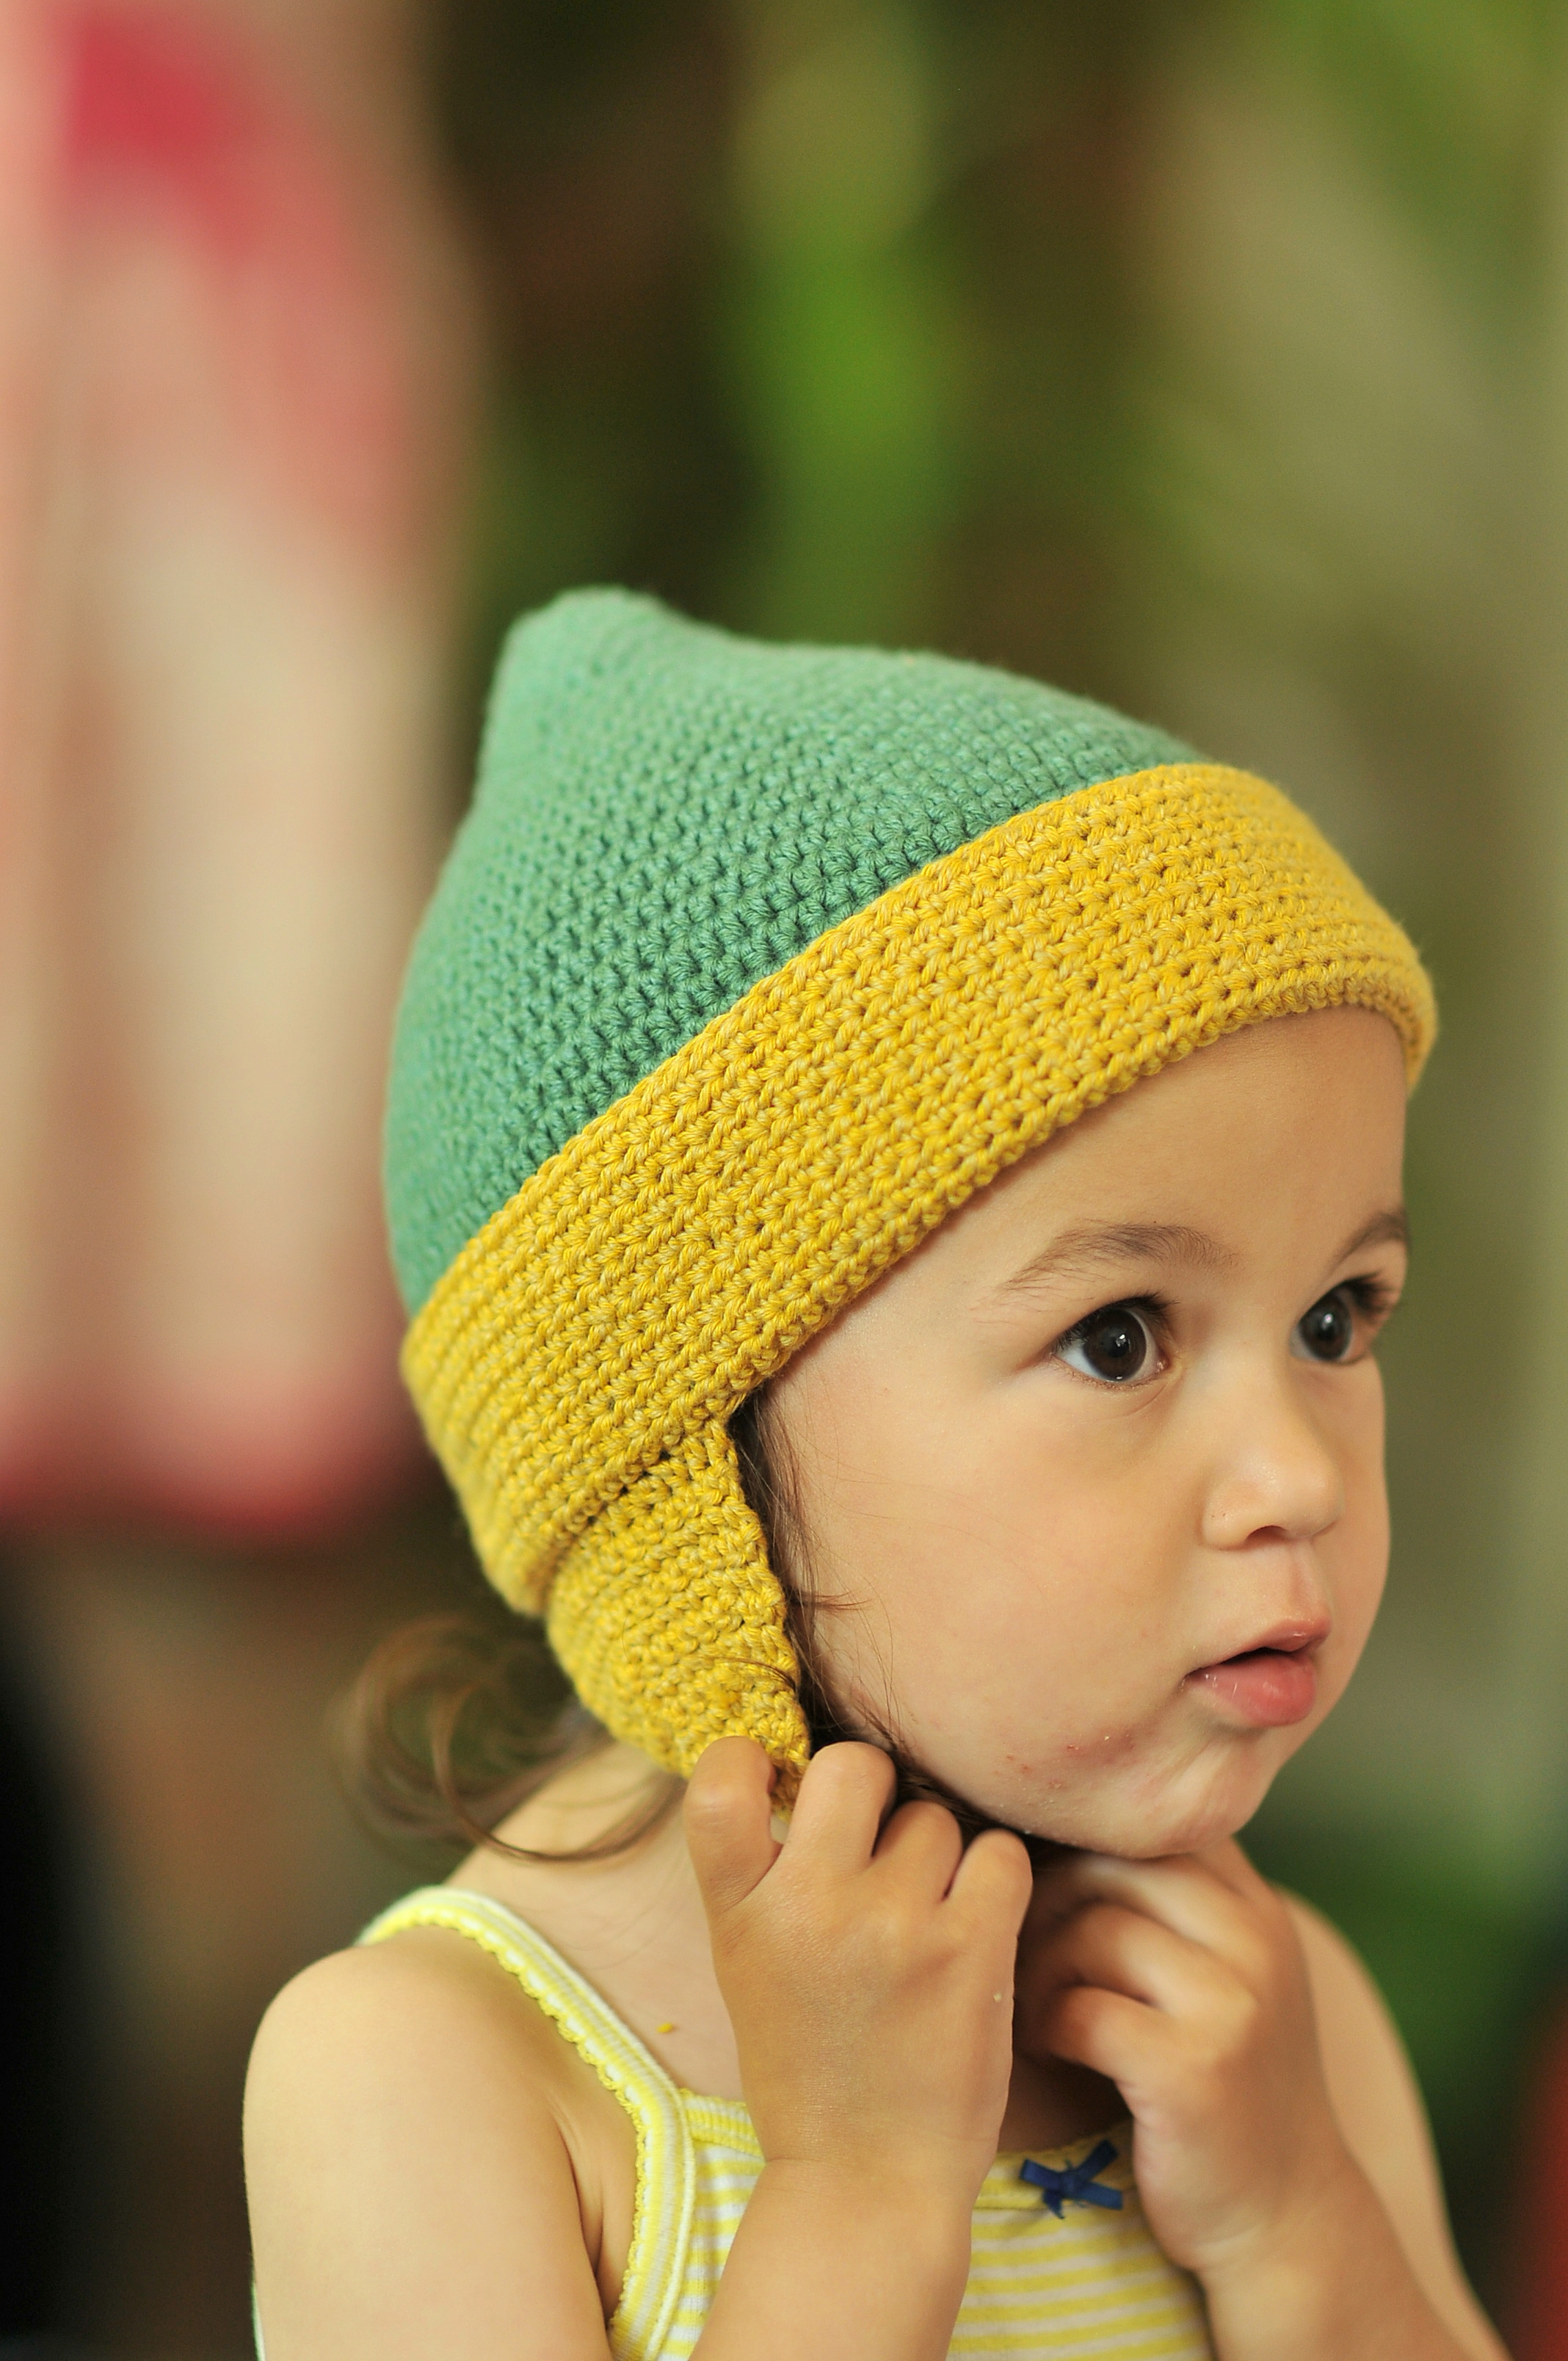 Free Crochet Hat Patterns For 1 Year Old : DIY: Crochet Toddler Earflap Hat and Free Pattern Kiku ...